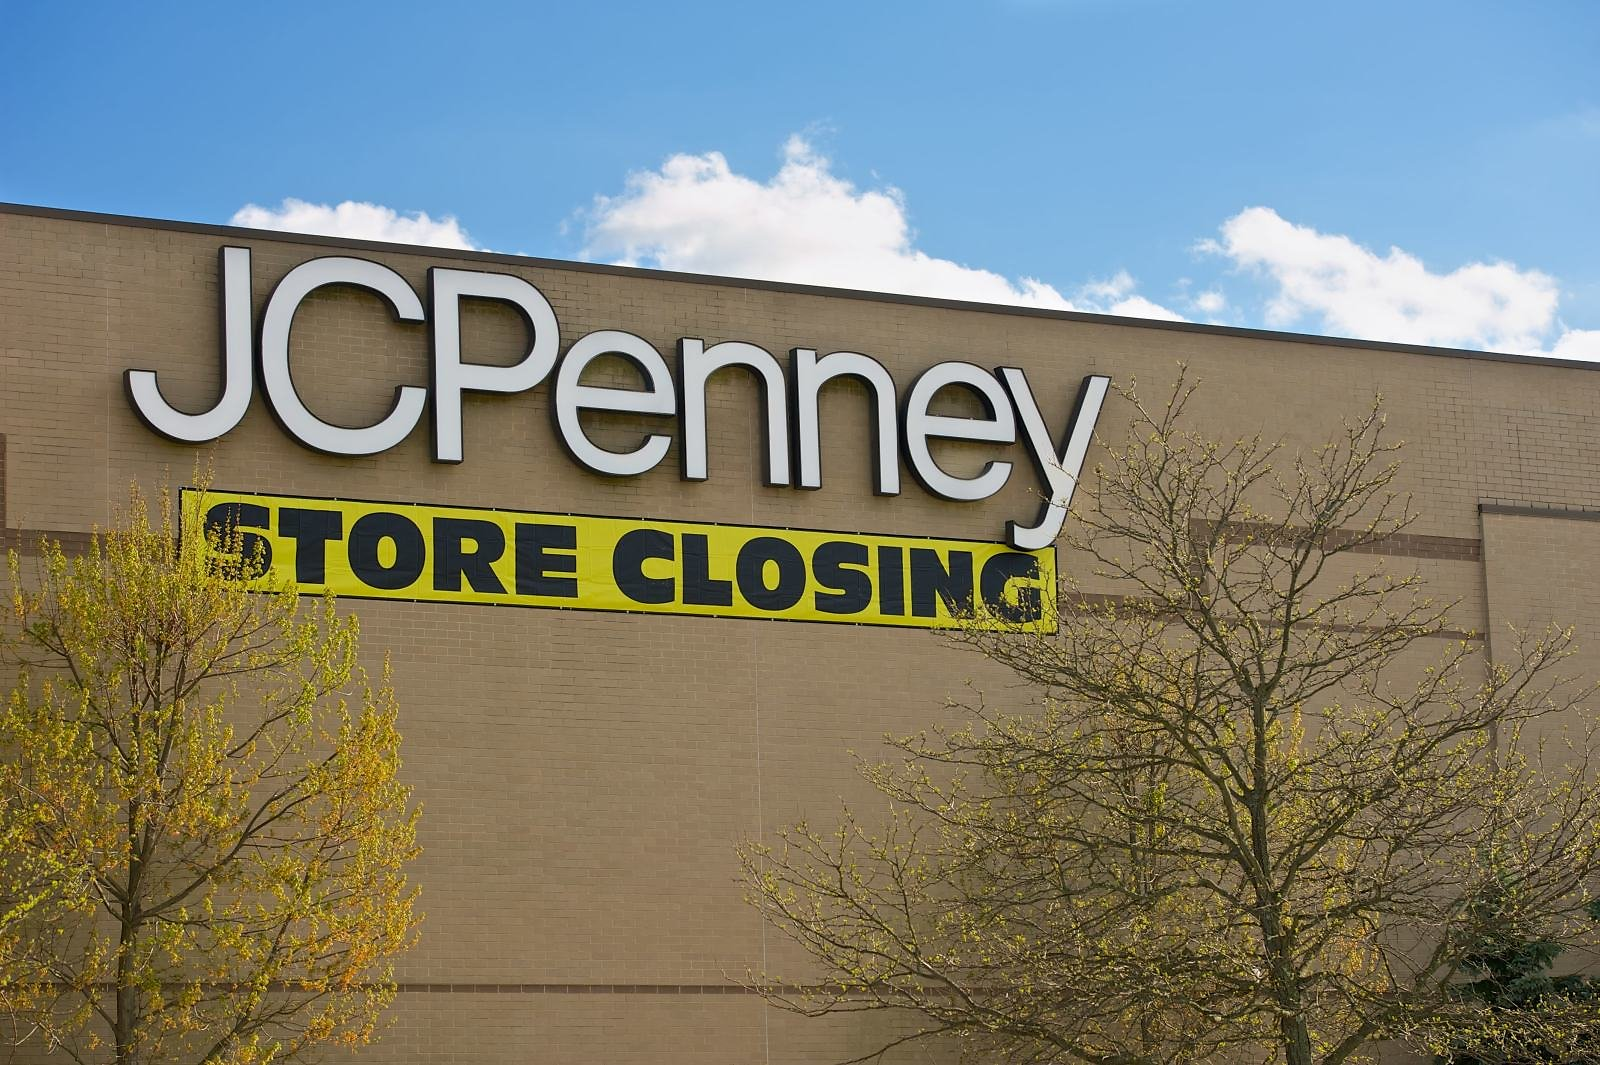 JC Penney Announces 154 Stores Set to Close This Summer. stores listed